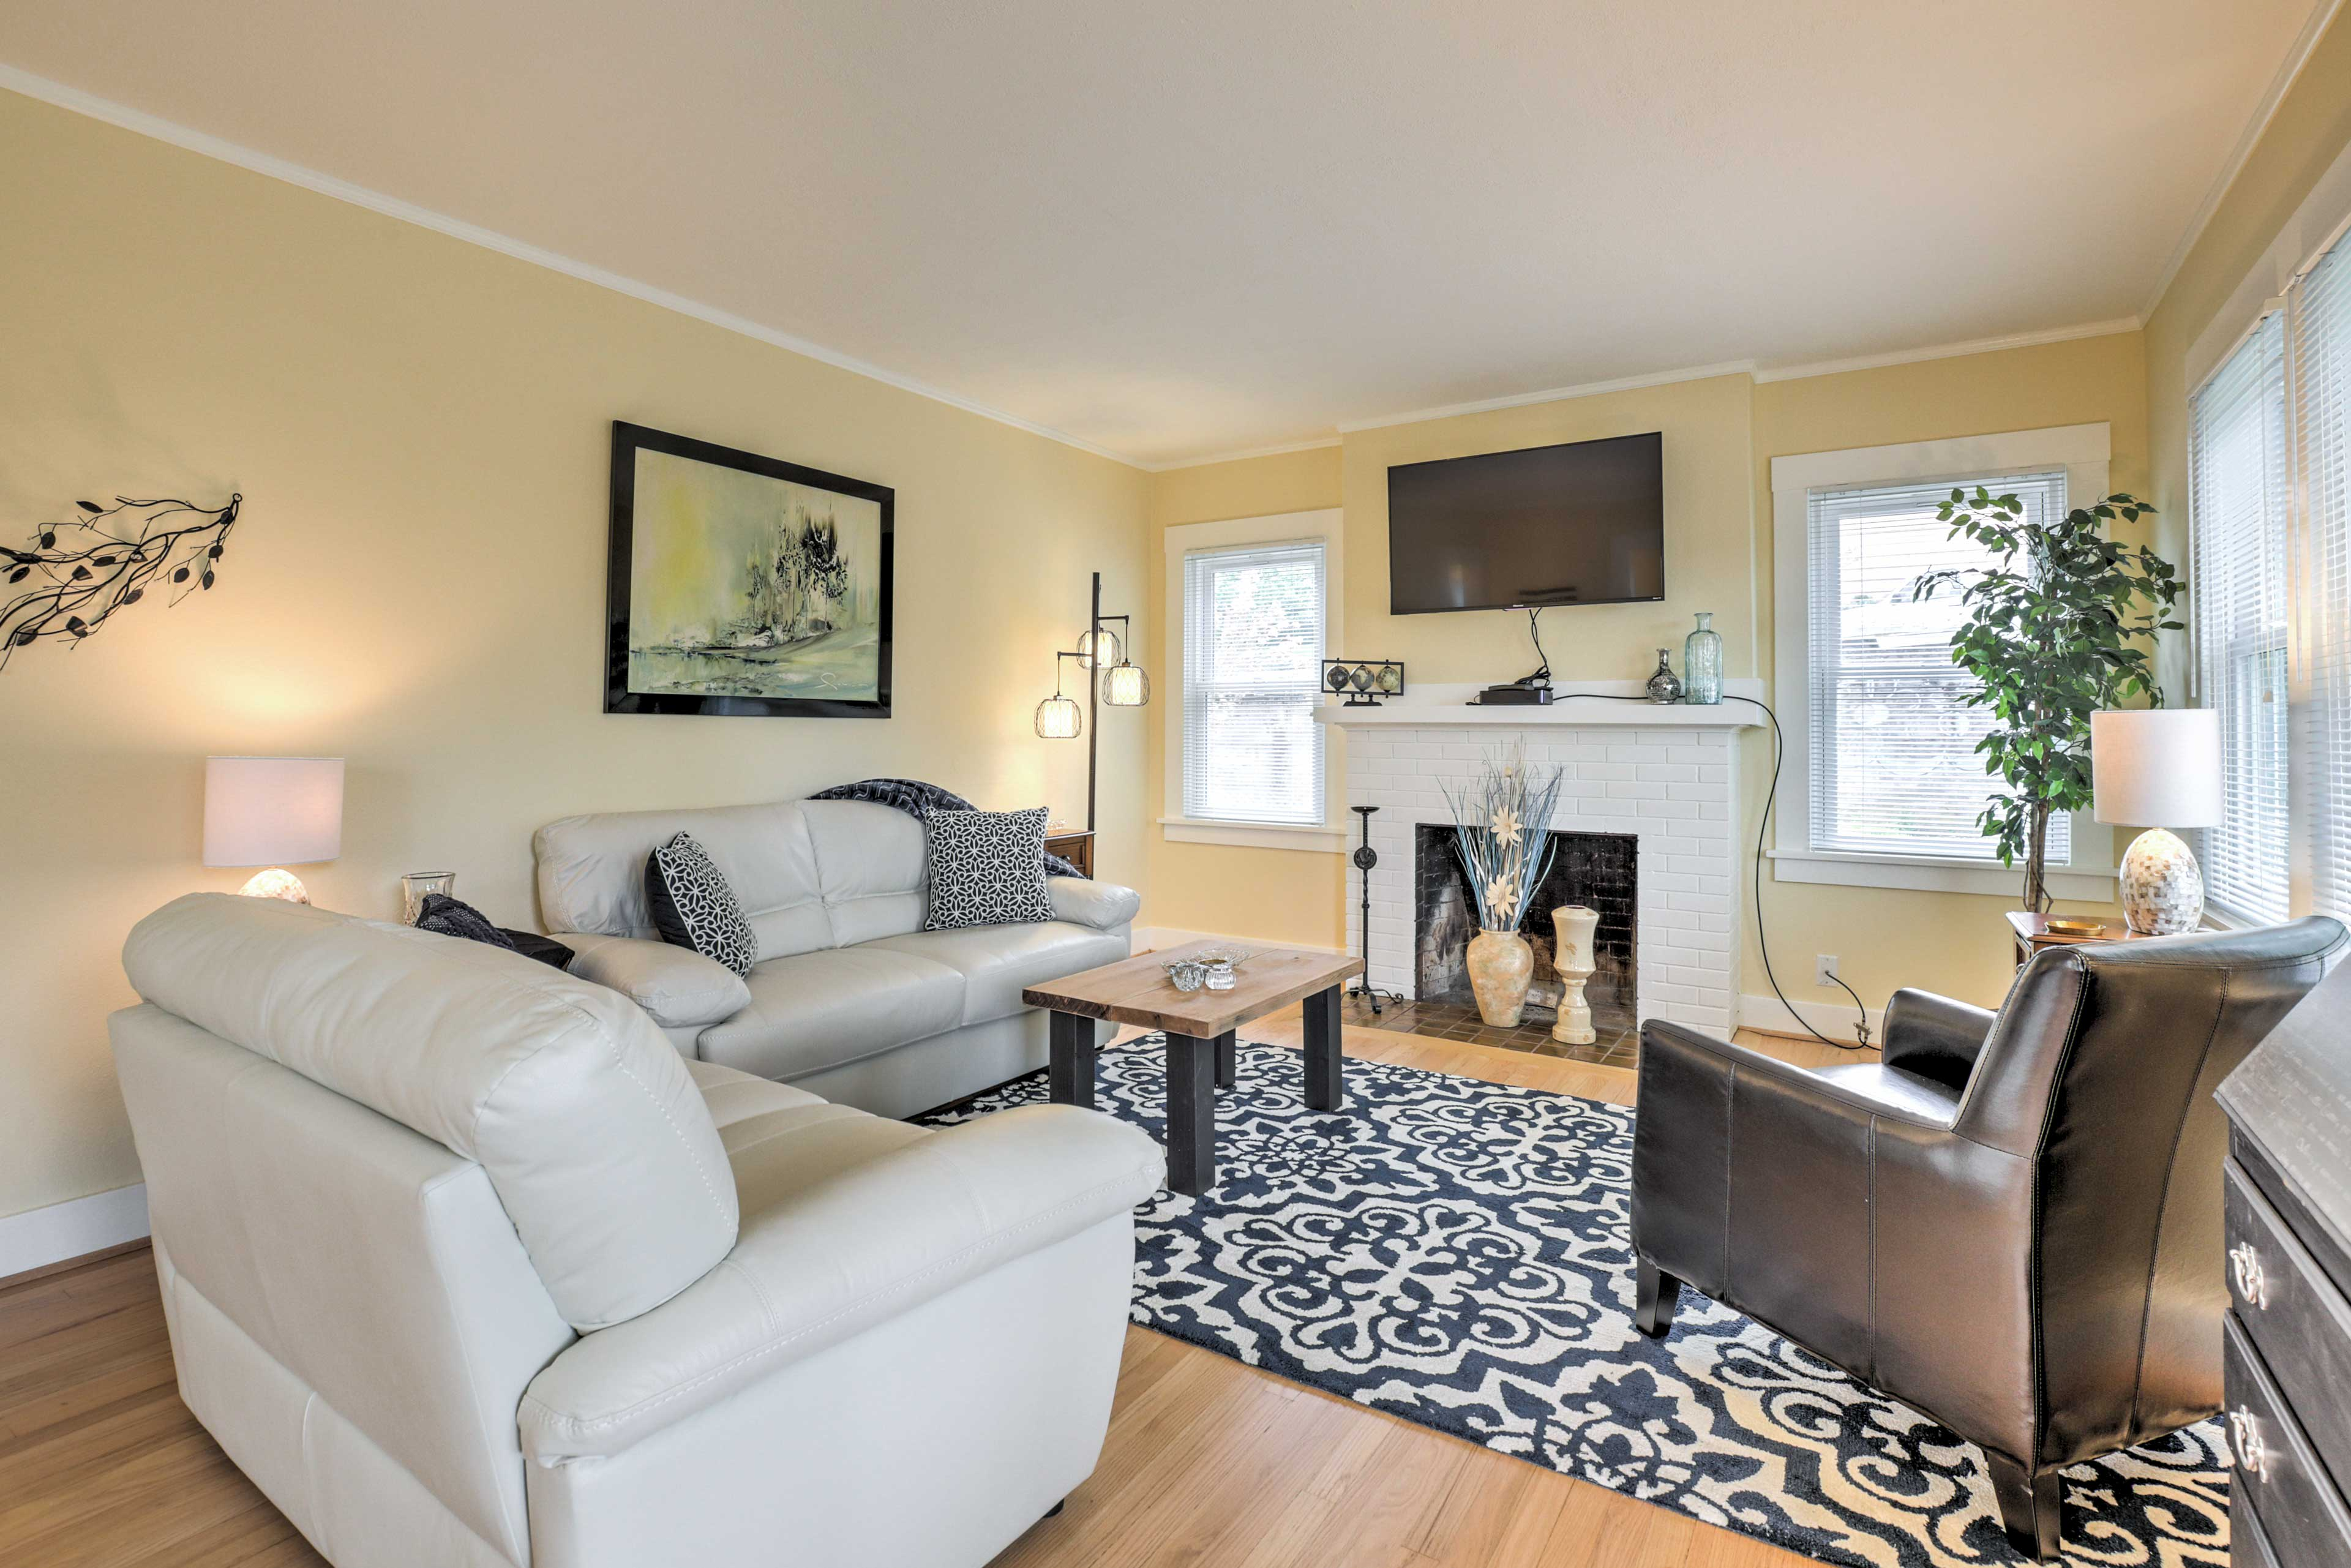 Relax in the living room, which features a flat-screen cable TV & gas fireplace.